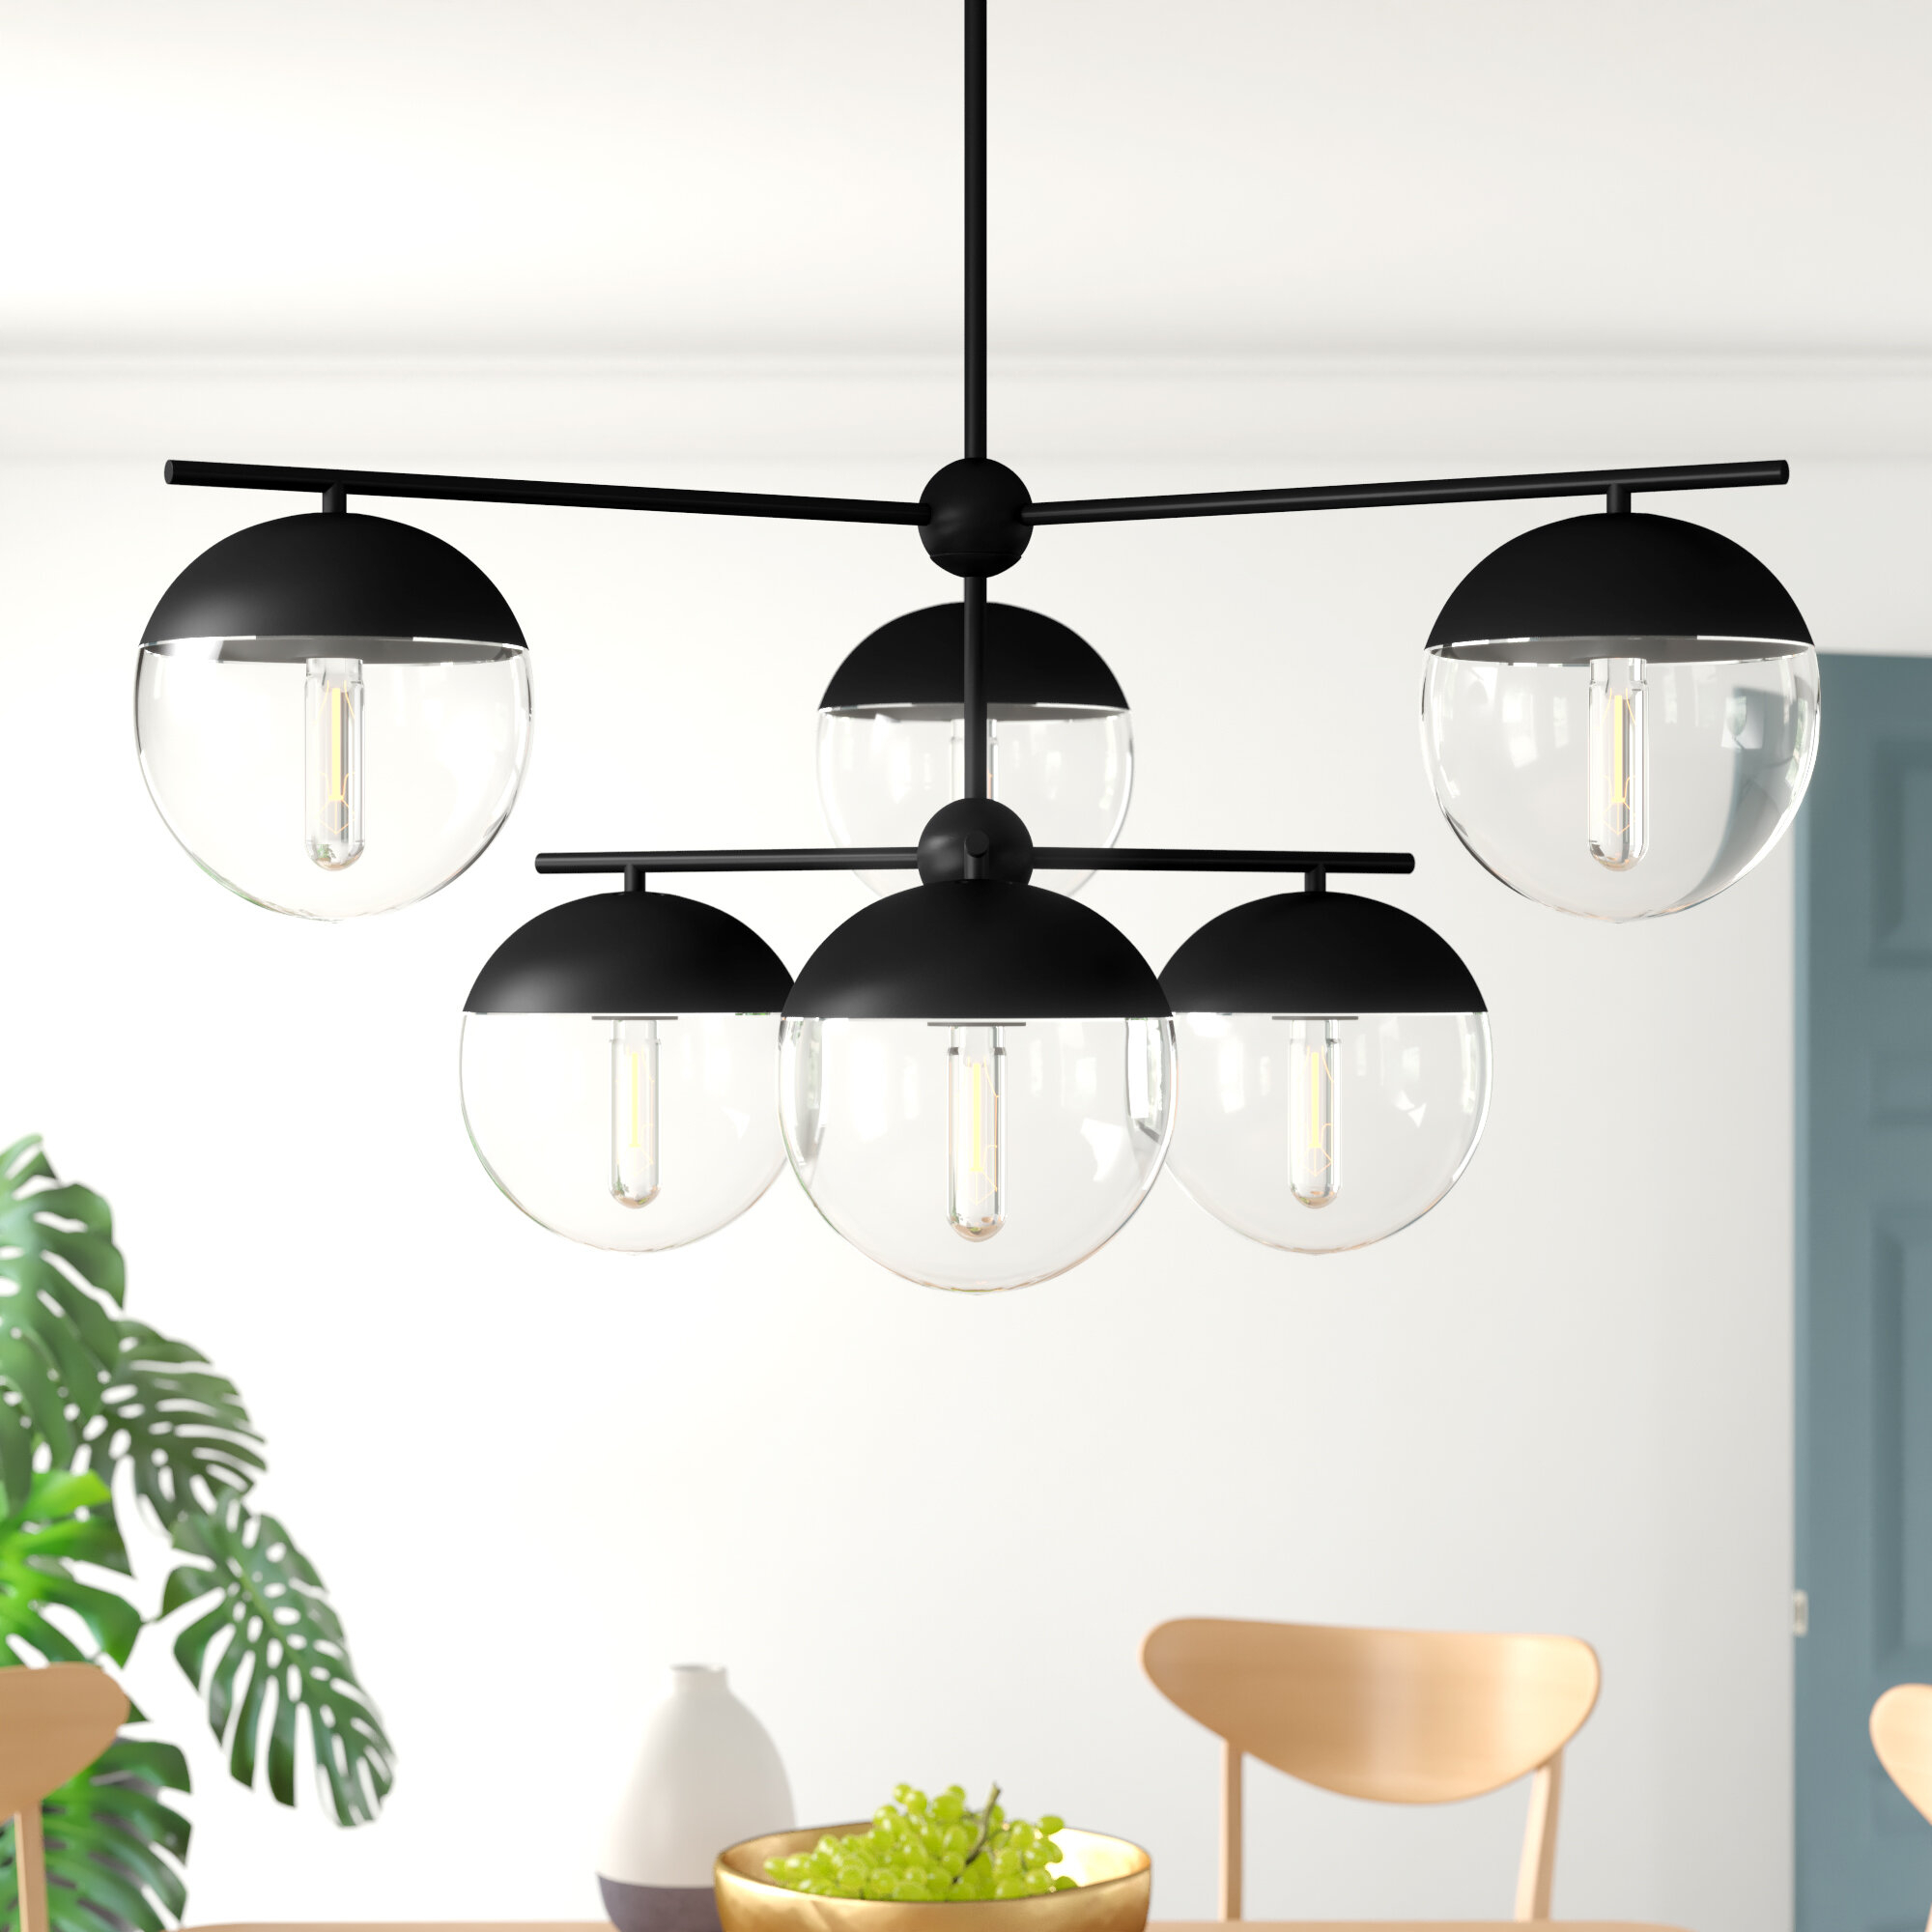 Yearby 6 Light Sputnik Chandelier Within Silvia 6 Light Sputnik Chandeliers (Gallery 8 of 30)